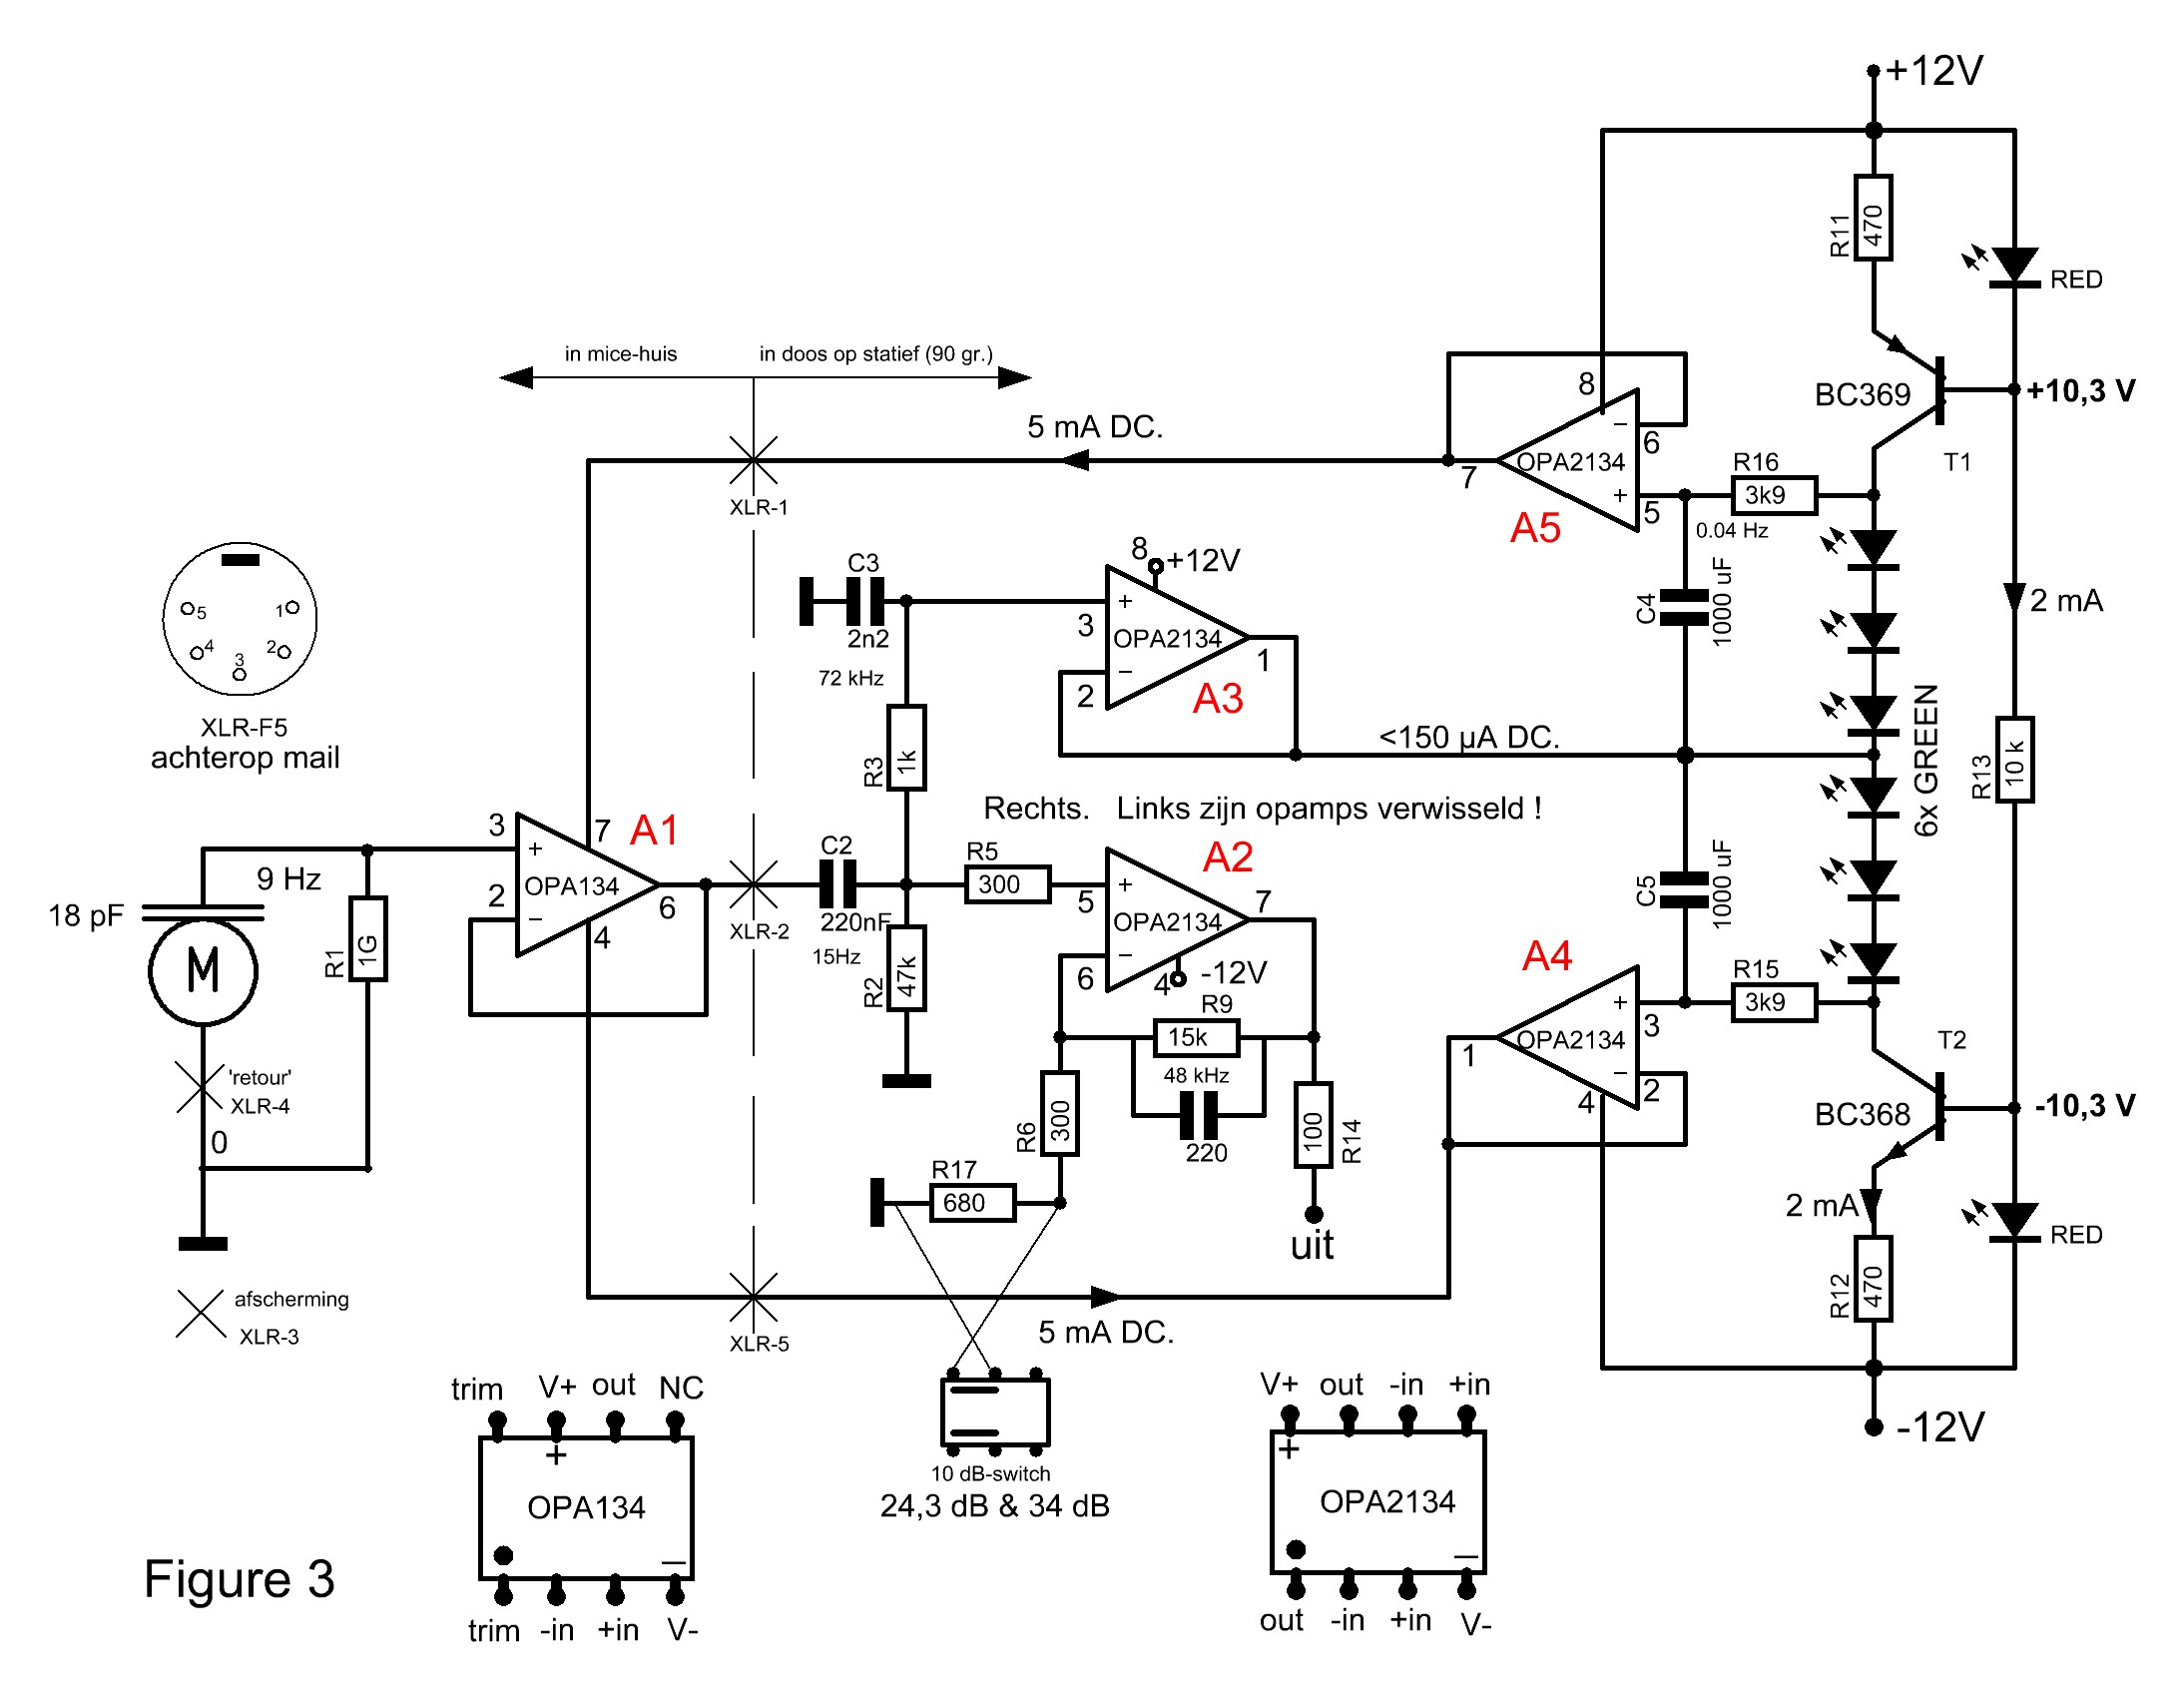 bazooka subwoofer wiring harness diagram